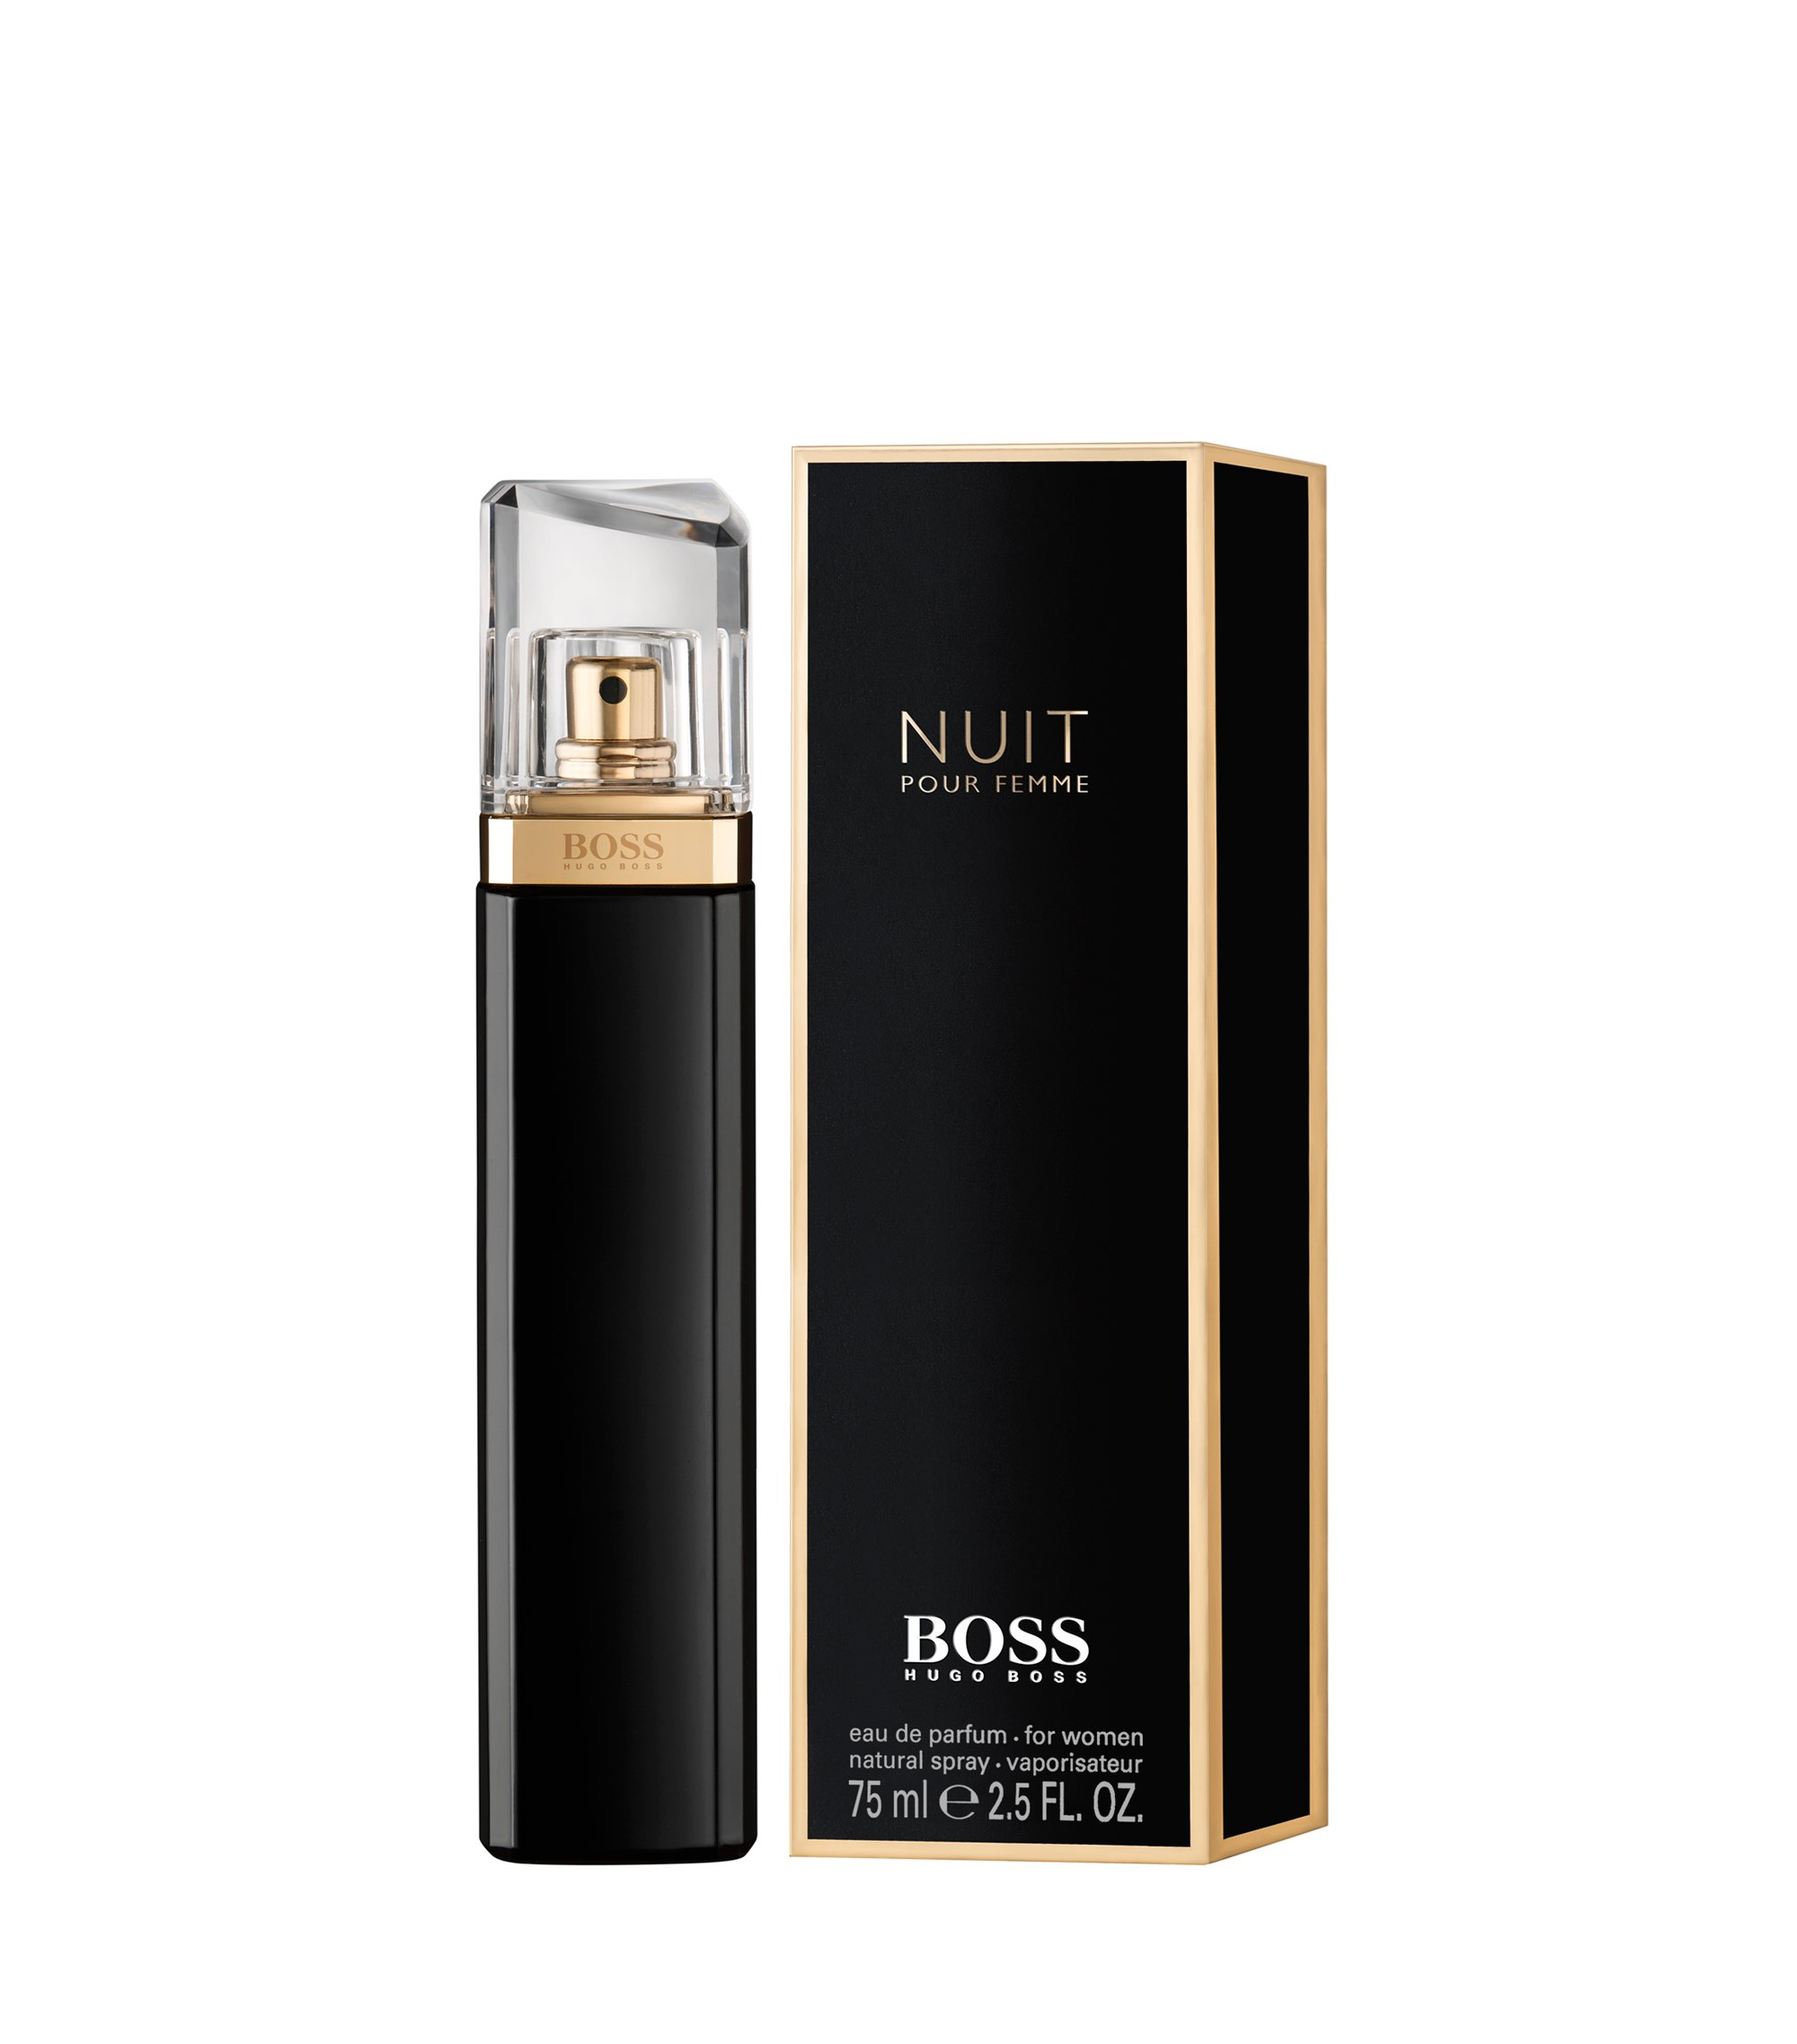 'BOSS Nuit' Eau de Parfum 75 ml, Assorted-Pre-Pack